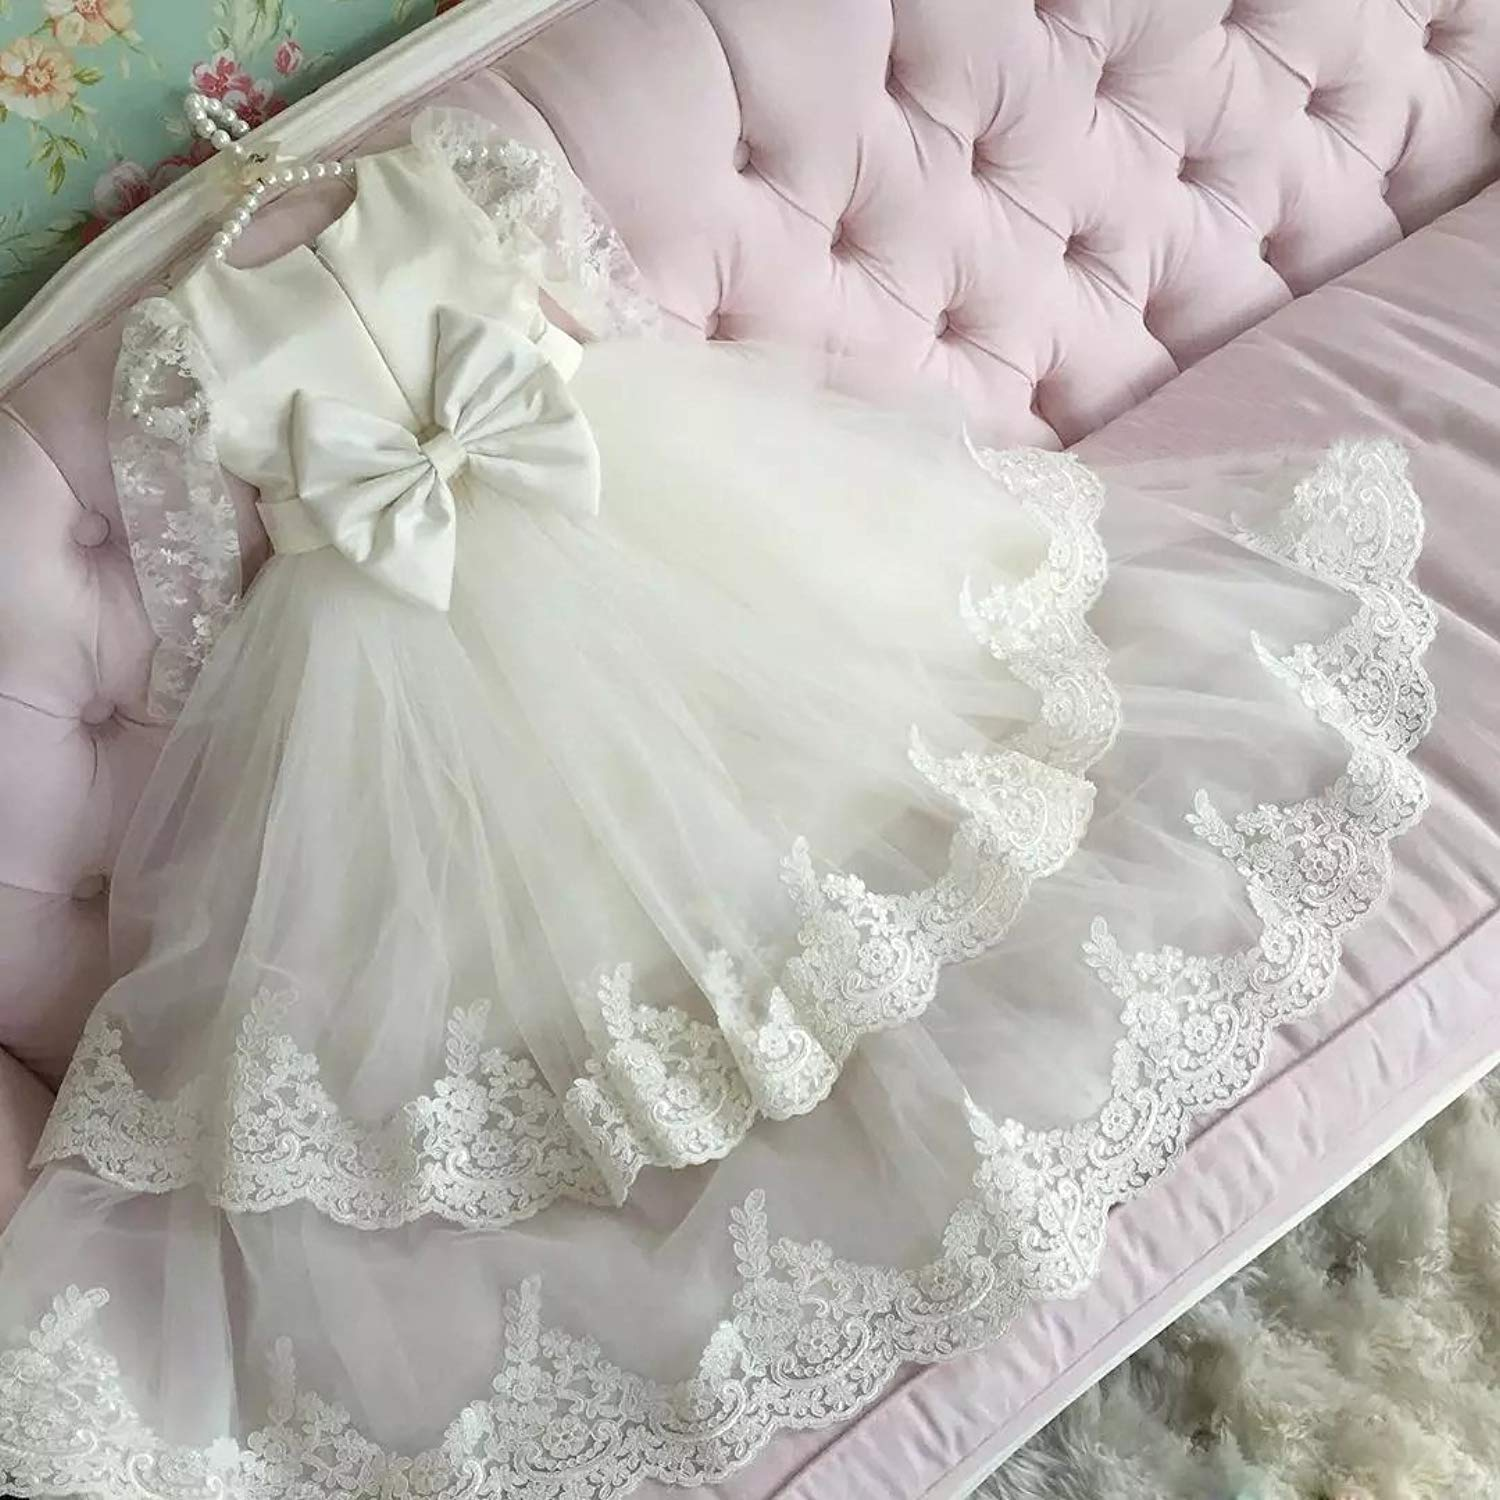 White Long Christening Gown Dresses with Bonnet Tulle Lace Edge 0-24 Months